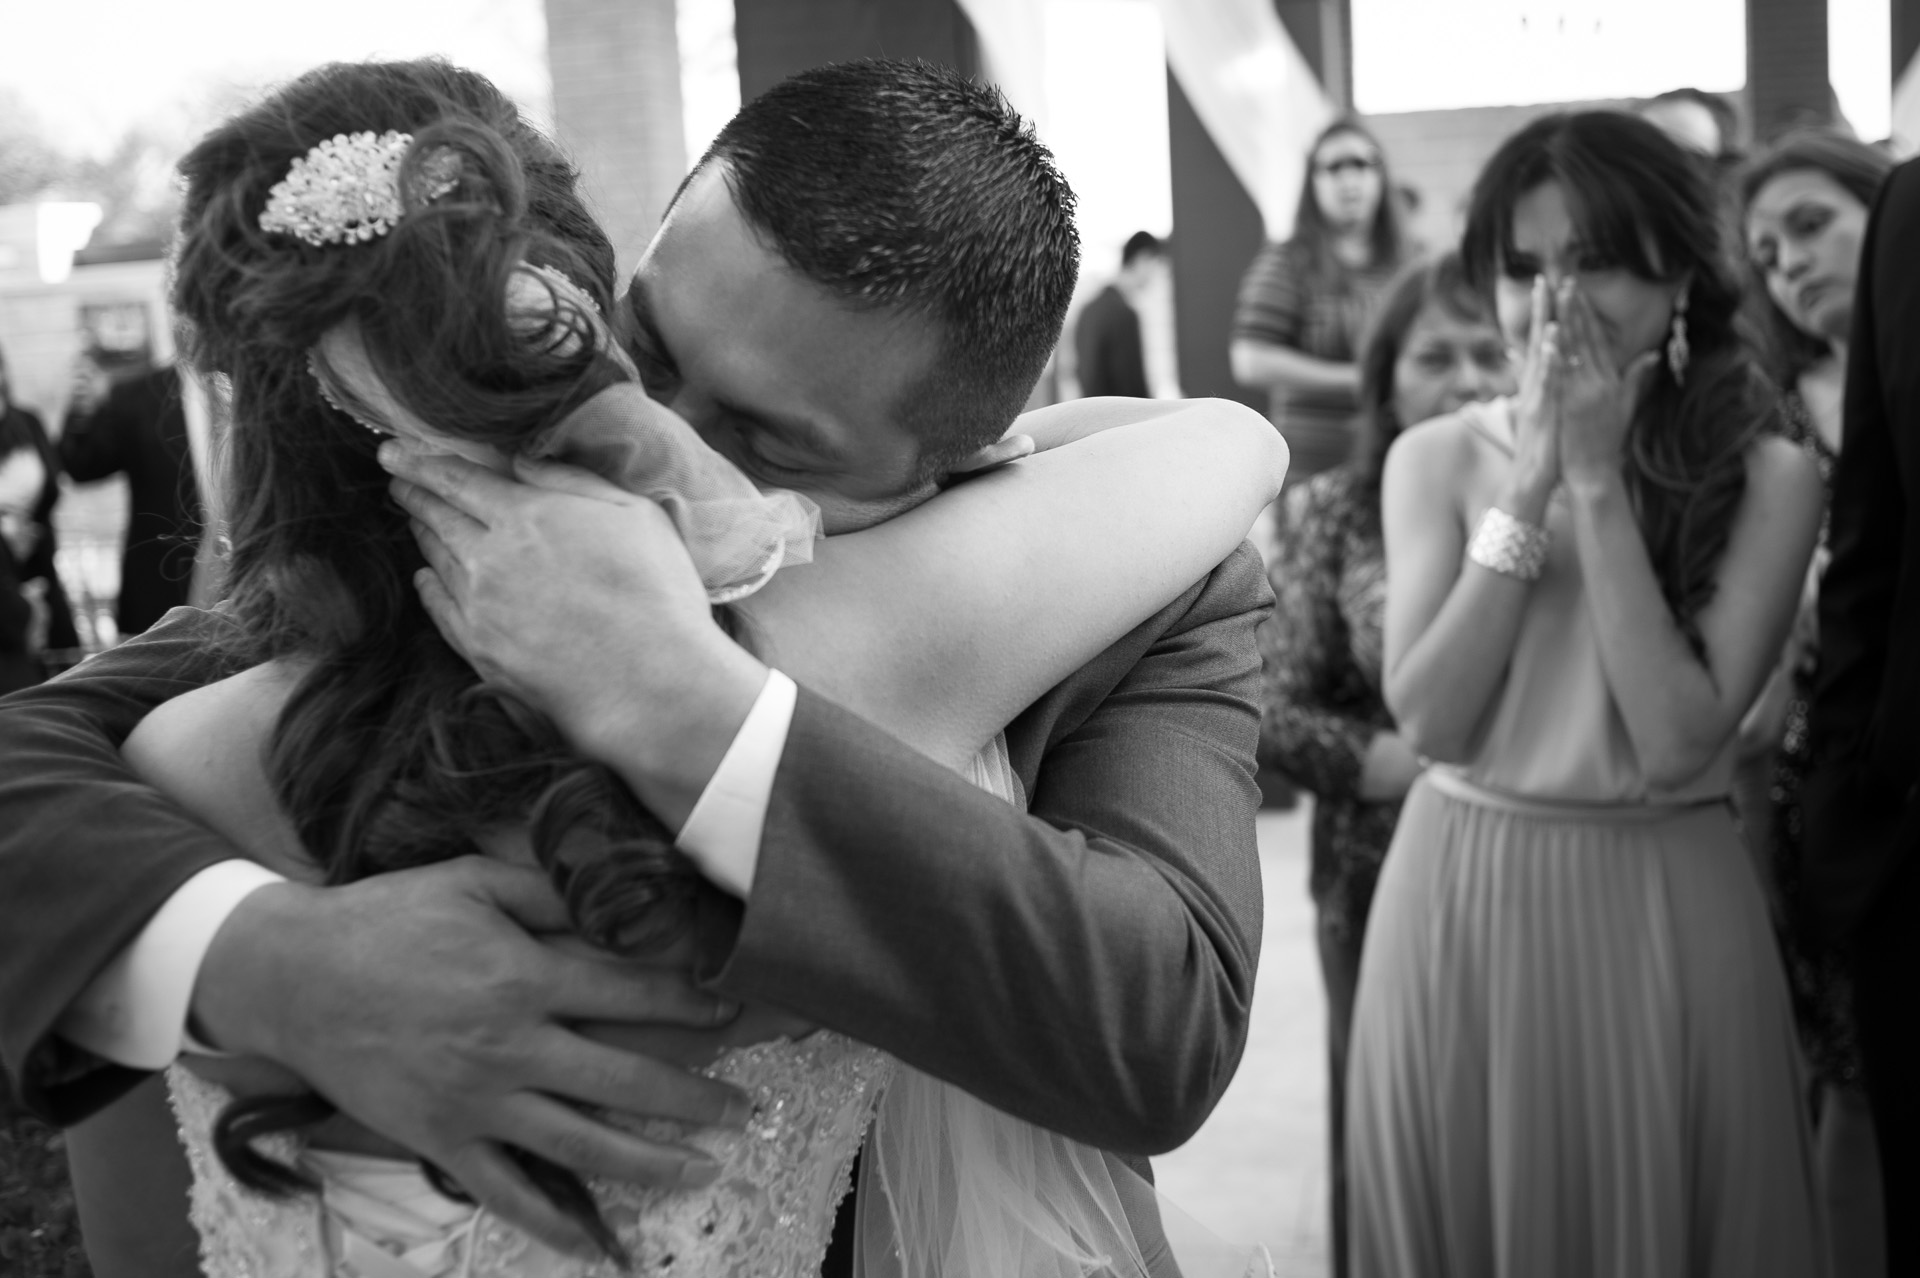 McAllen Wedding Photographers And Videography Films Based On The Heart Of Rio Grande Valley